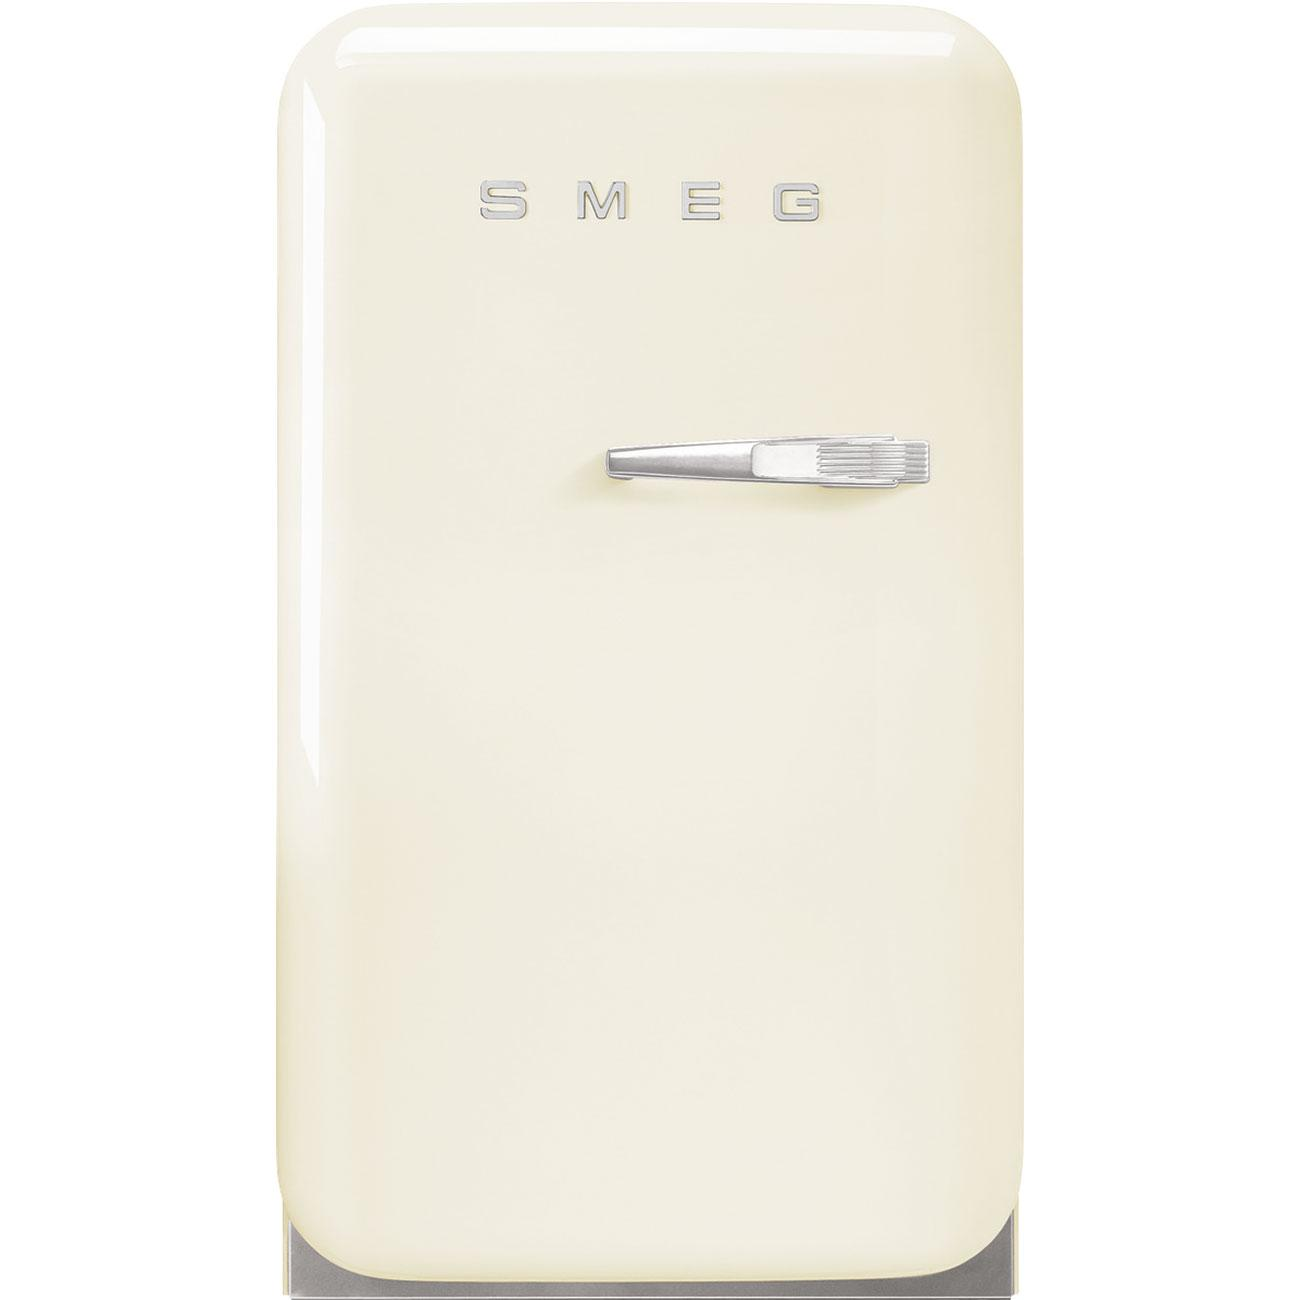 SmegRetro-Style Mini Refrigerator, Left-Hand Hinge, Cream